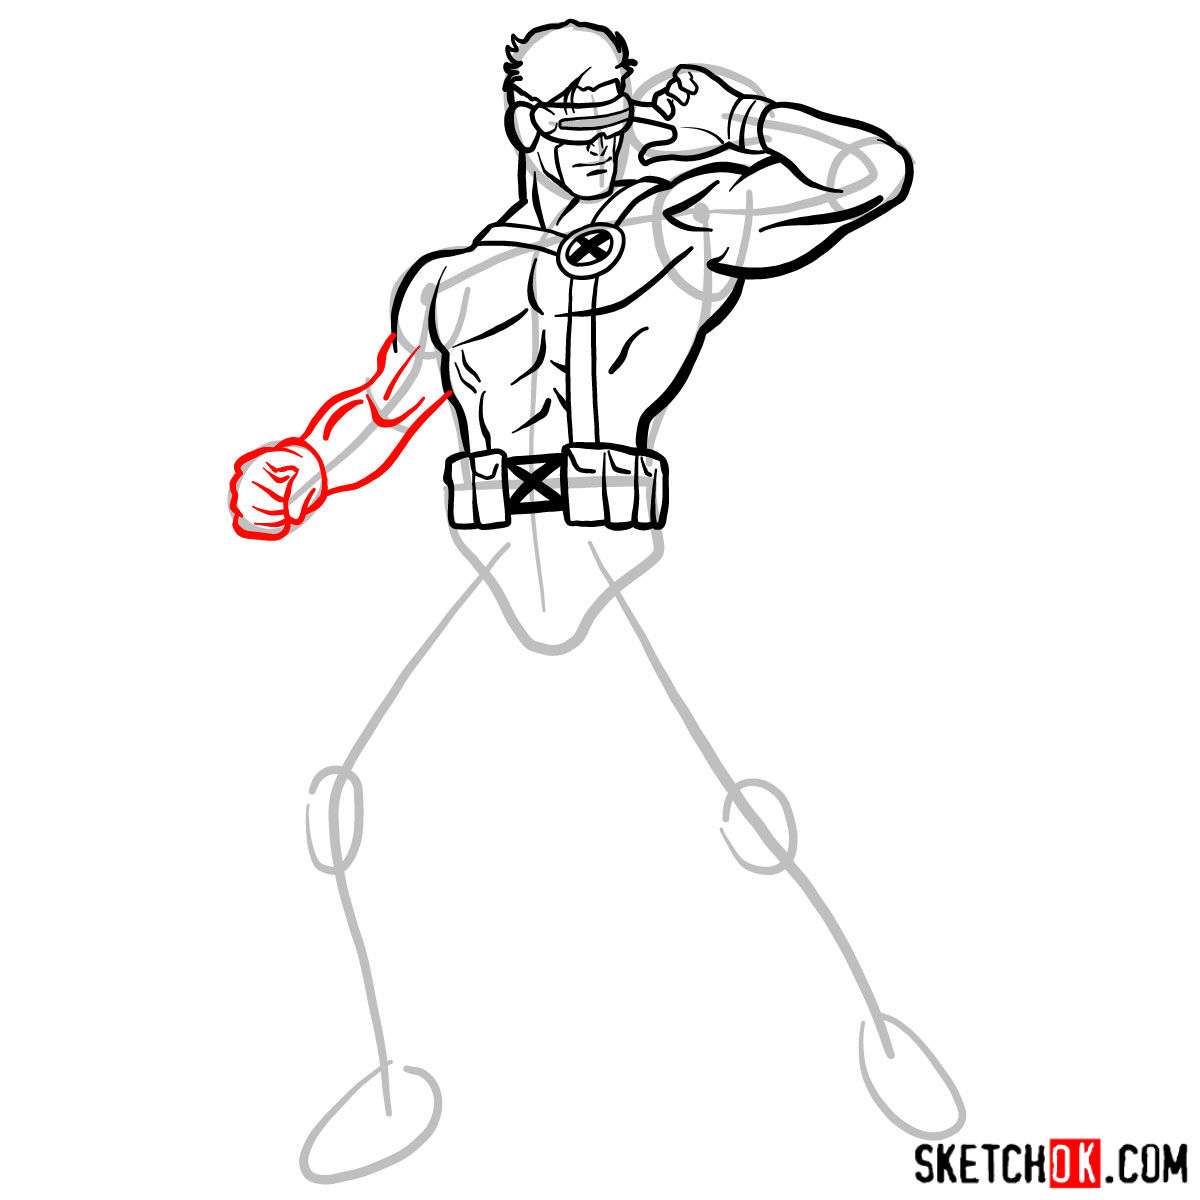 How to draw Cyclops from X-Men - step 12